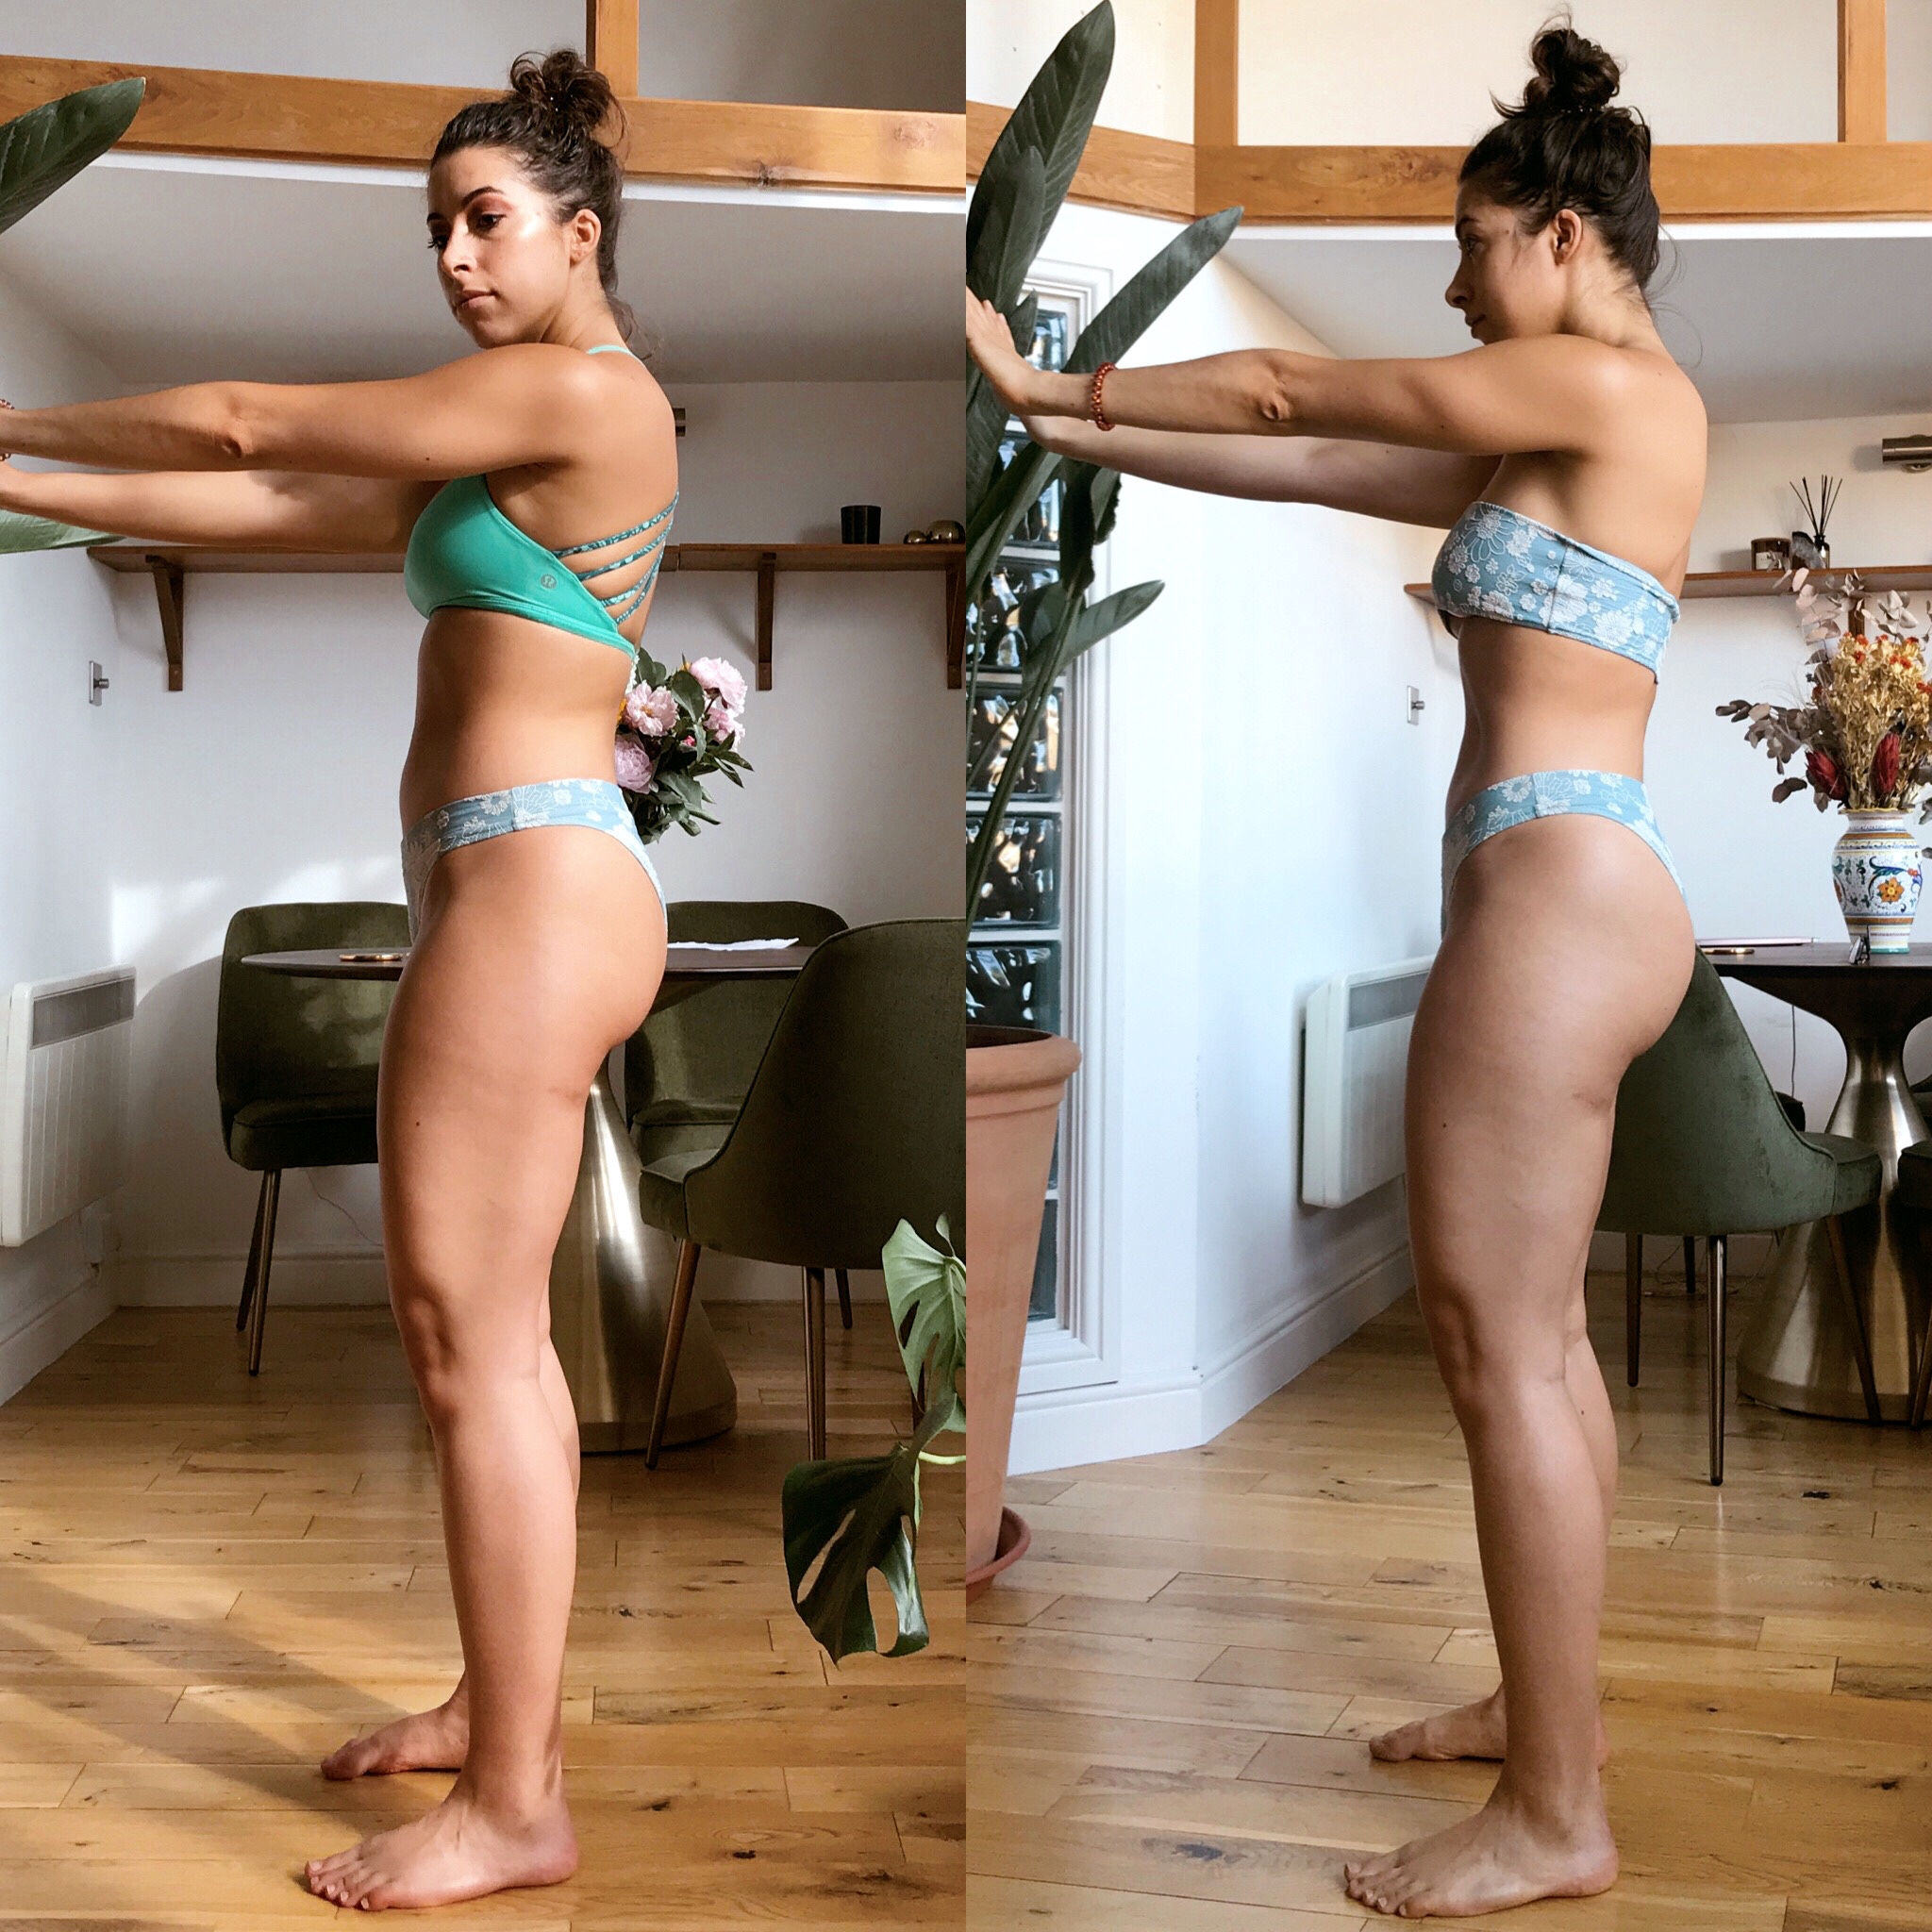 Hey guys! This is part 2 of my review of Madeline Moves' Tighter Together program. It's going to cover all things macros and nutrition, which were integral to my Tighter Together Results. But, if you missed part 1, I would definitely recommend going back and starting there because it explains how the program is set up, what the workouts are like, who the program is right for and more.